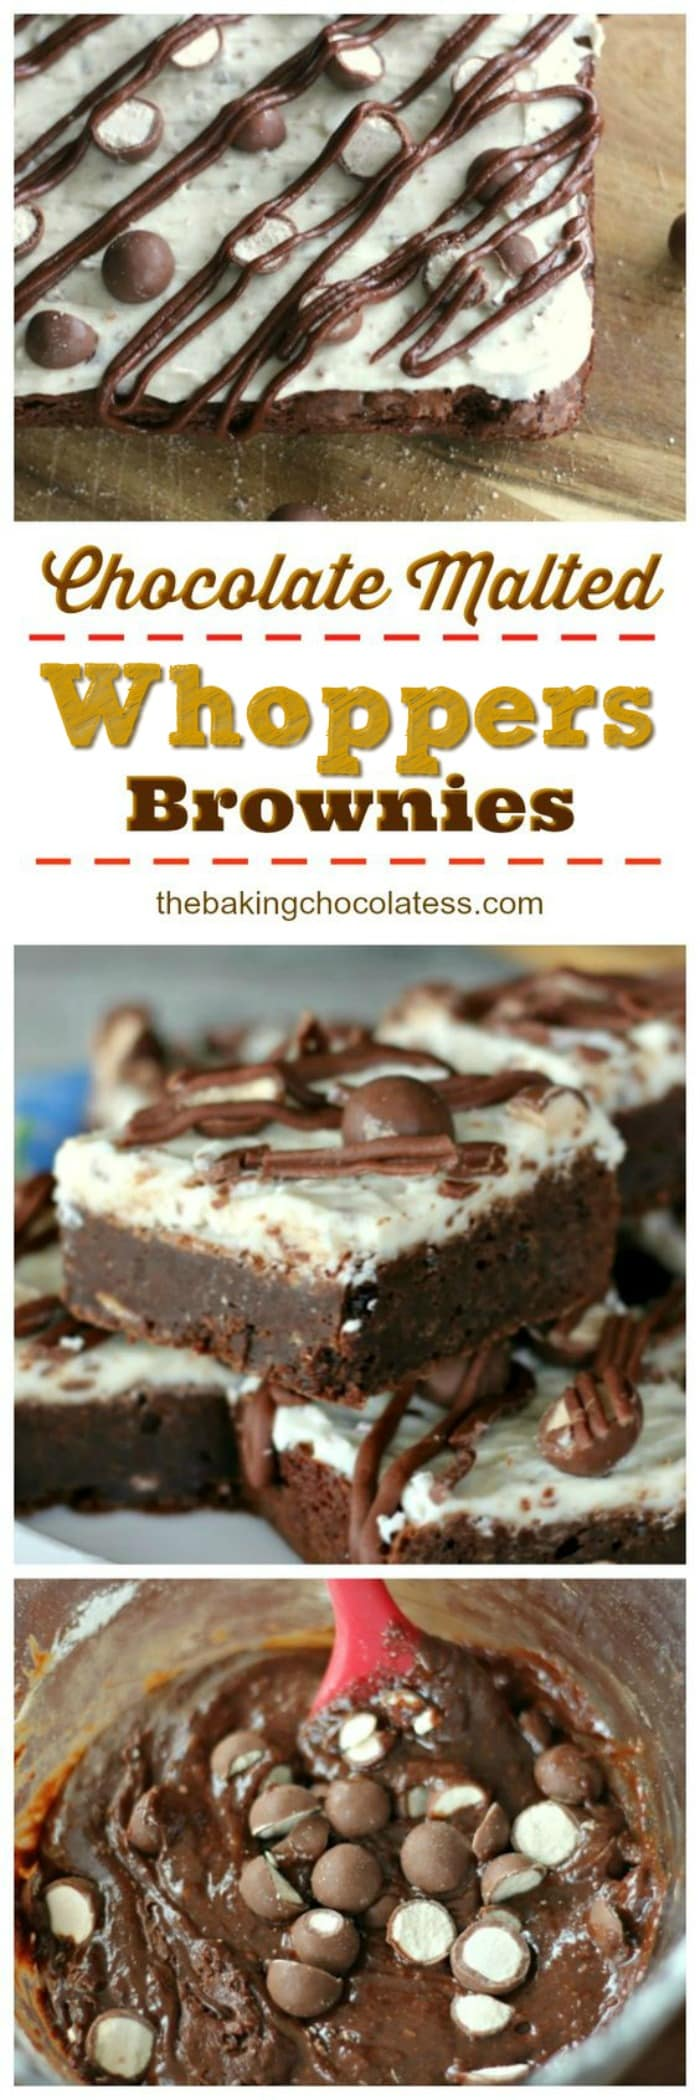 Triple Chocolate Malted Whoppers Brownies